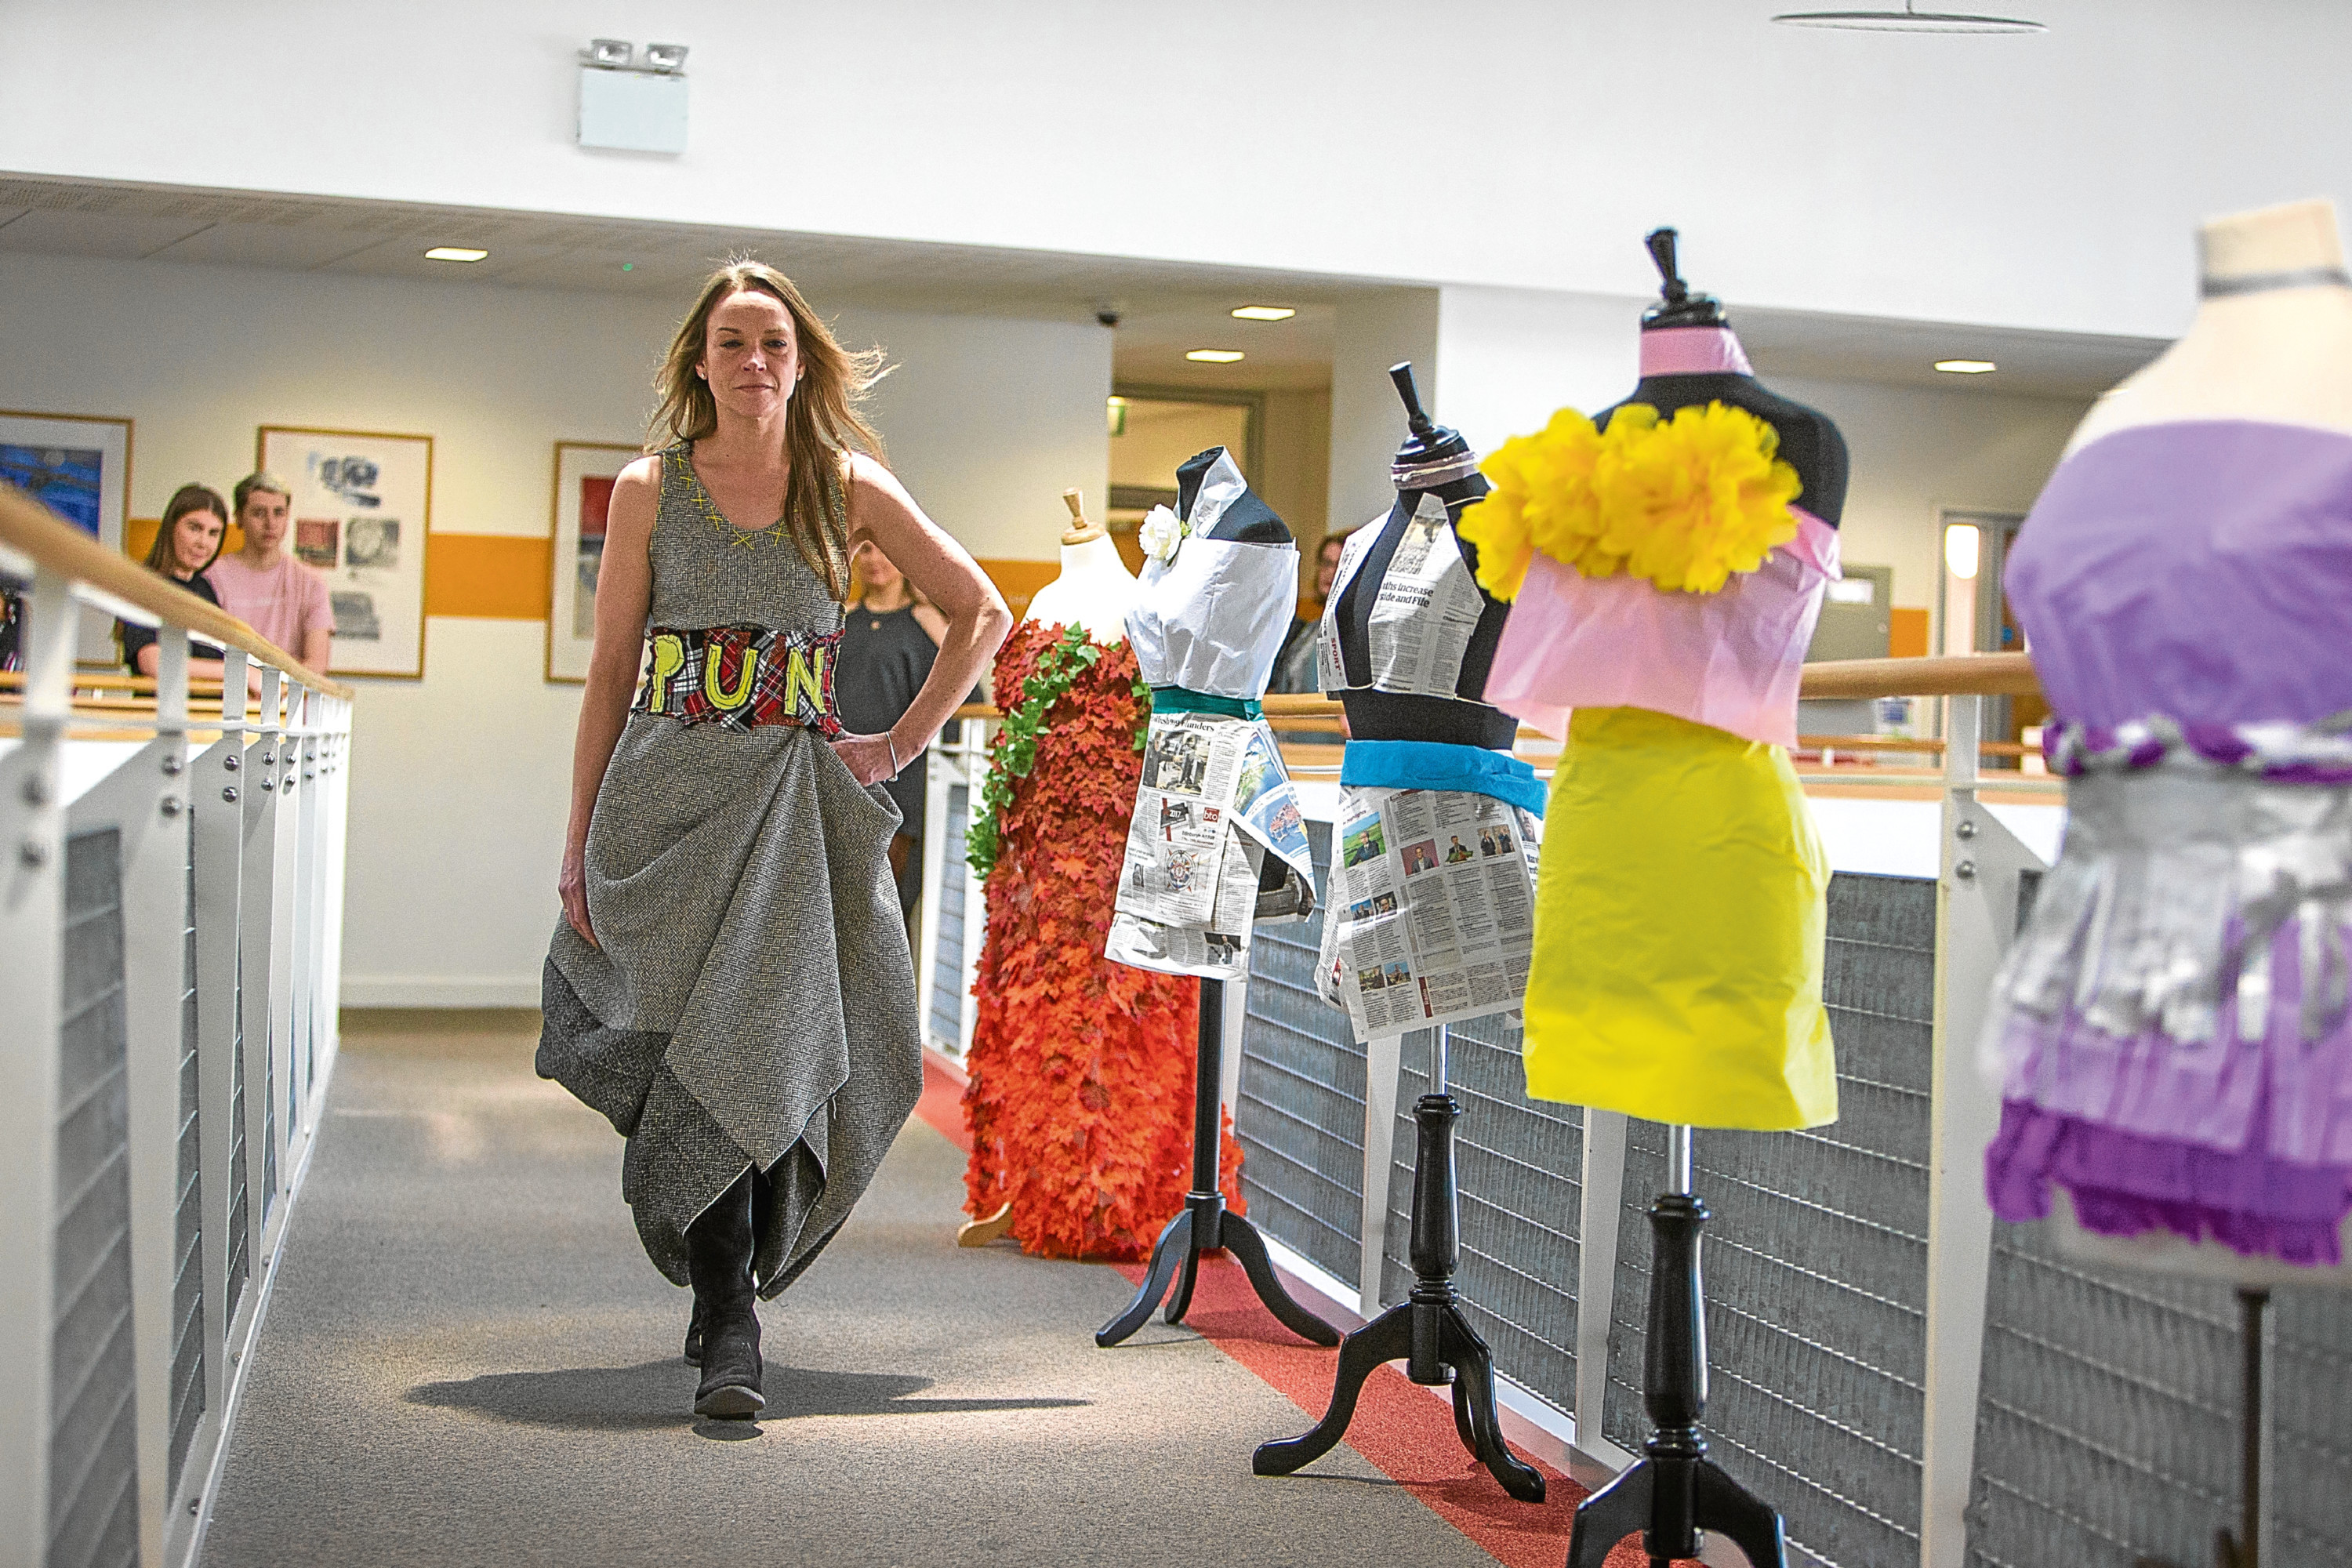 Donna Jackson models a dress for the catwalk made by fashion students at Dundee and Angus College.